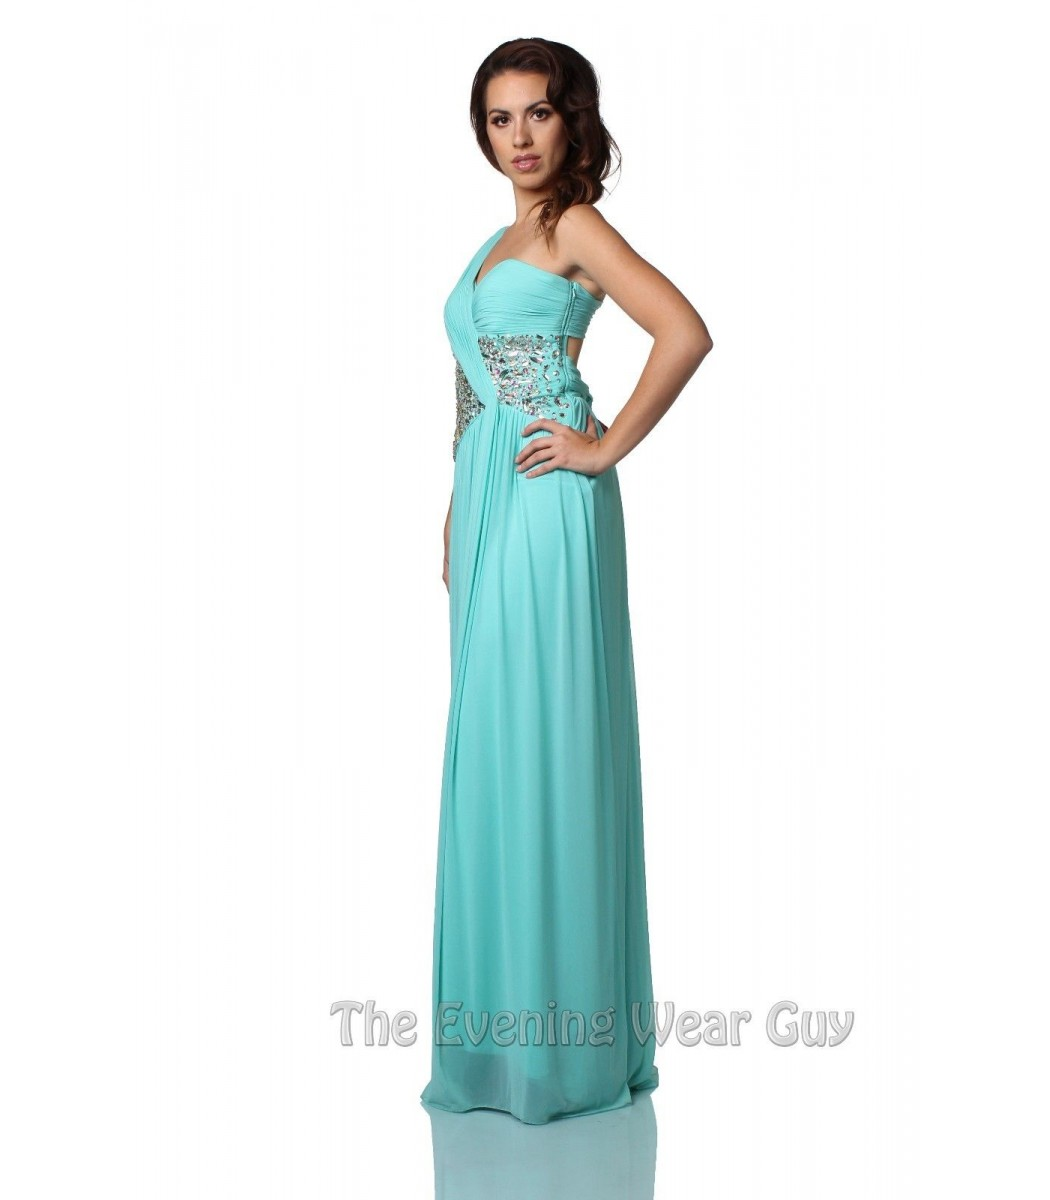 Terani Couture P1502 Tiffany Blue One Shoulder Formal Gown Prom ...